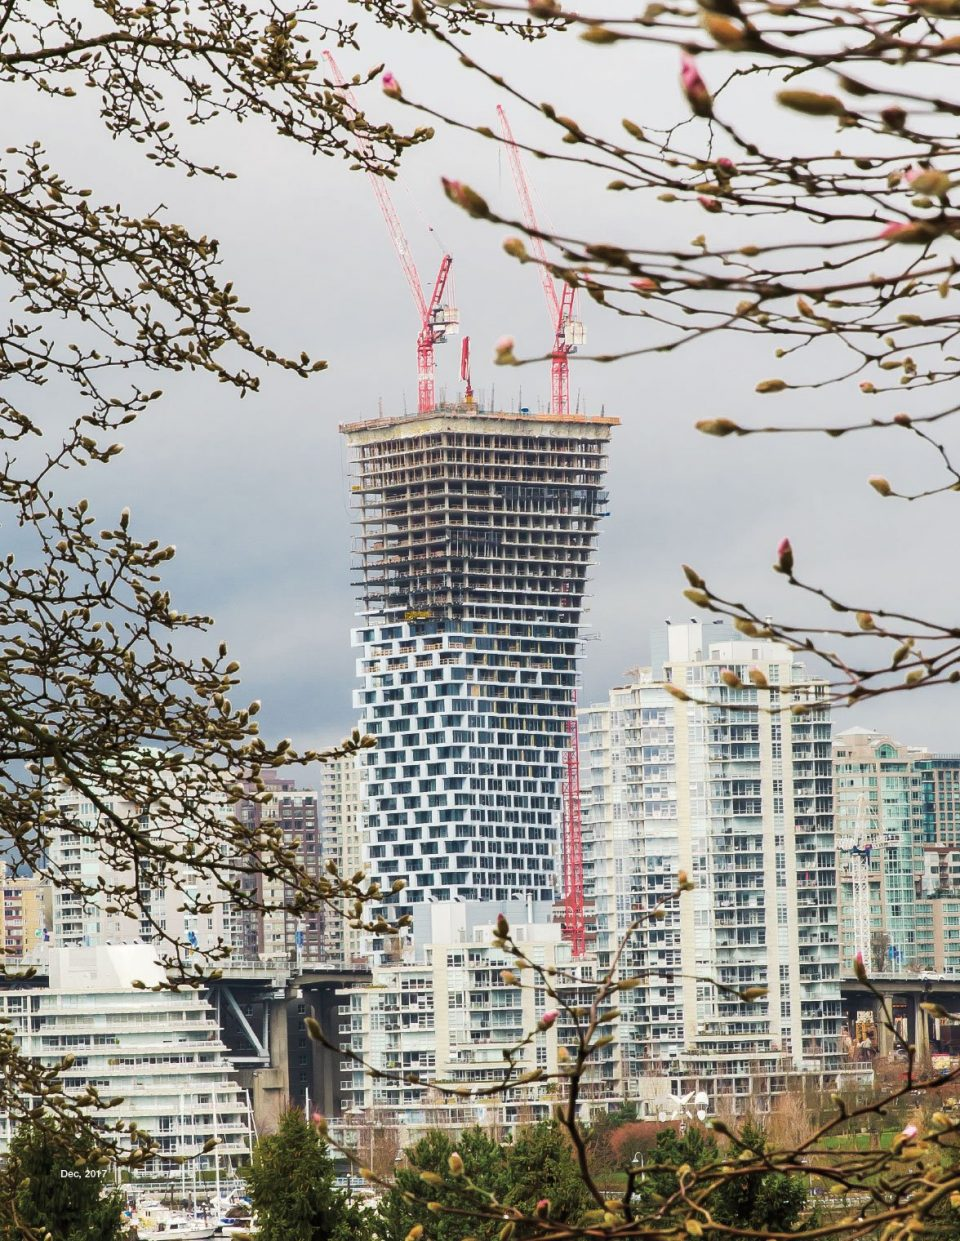 Vancouver House construction 2018